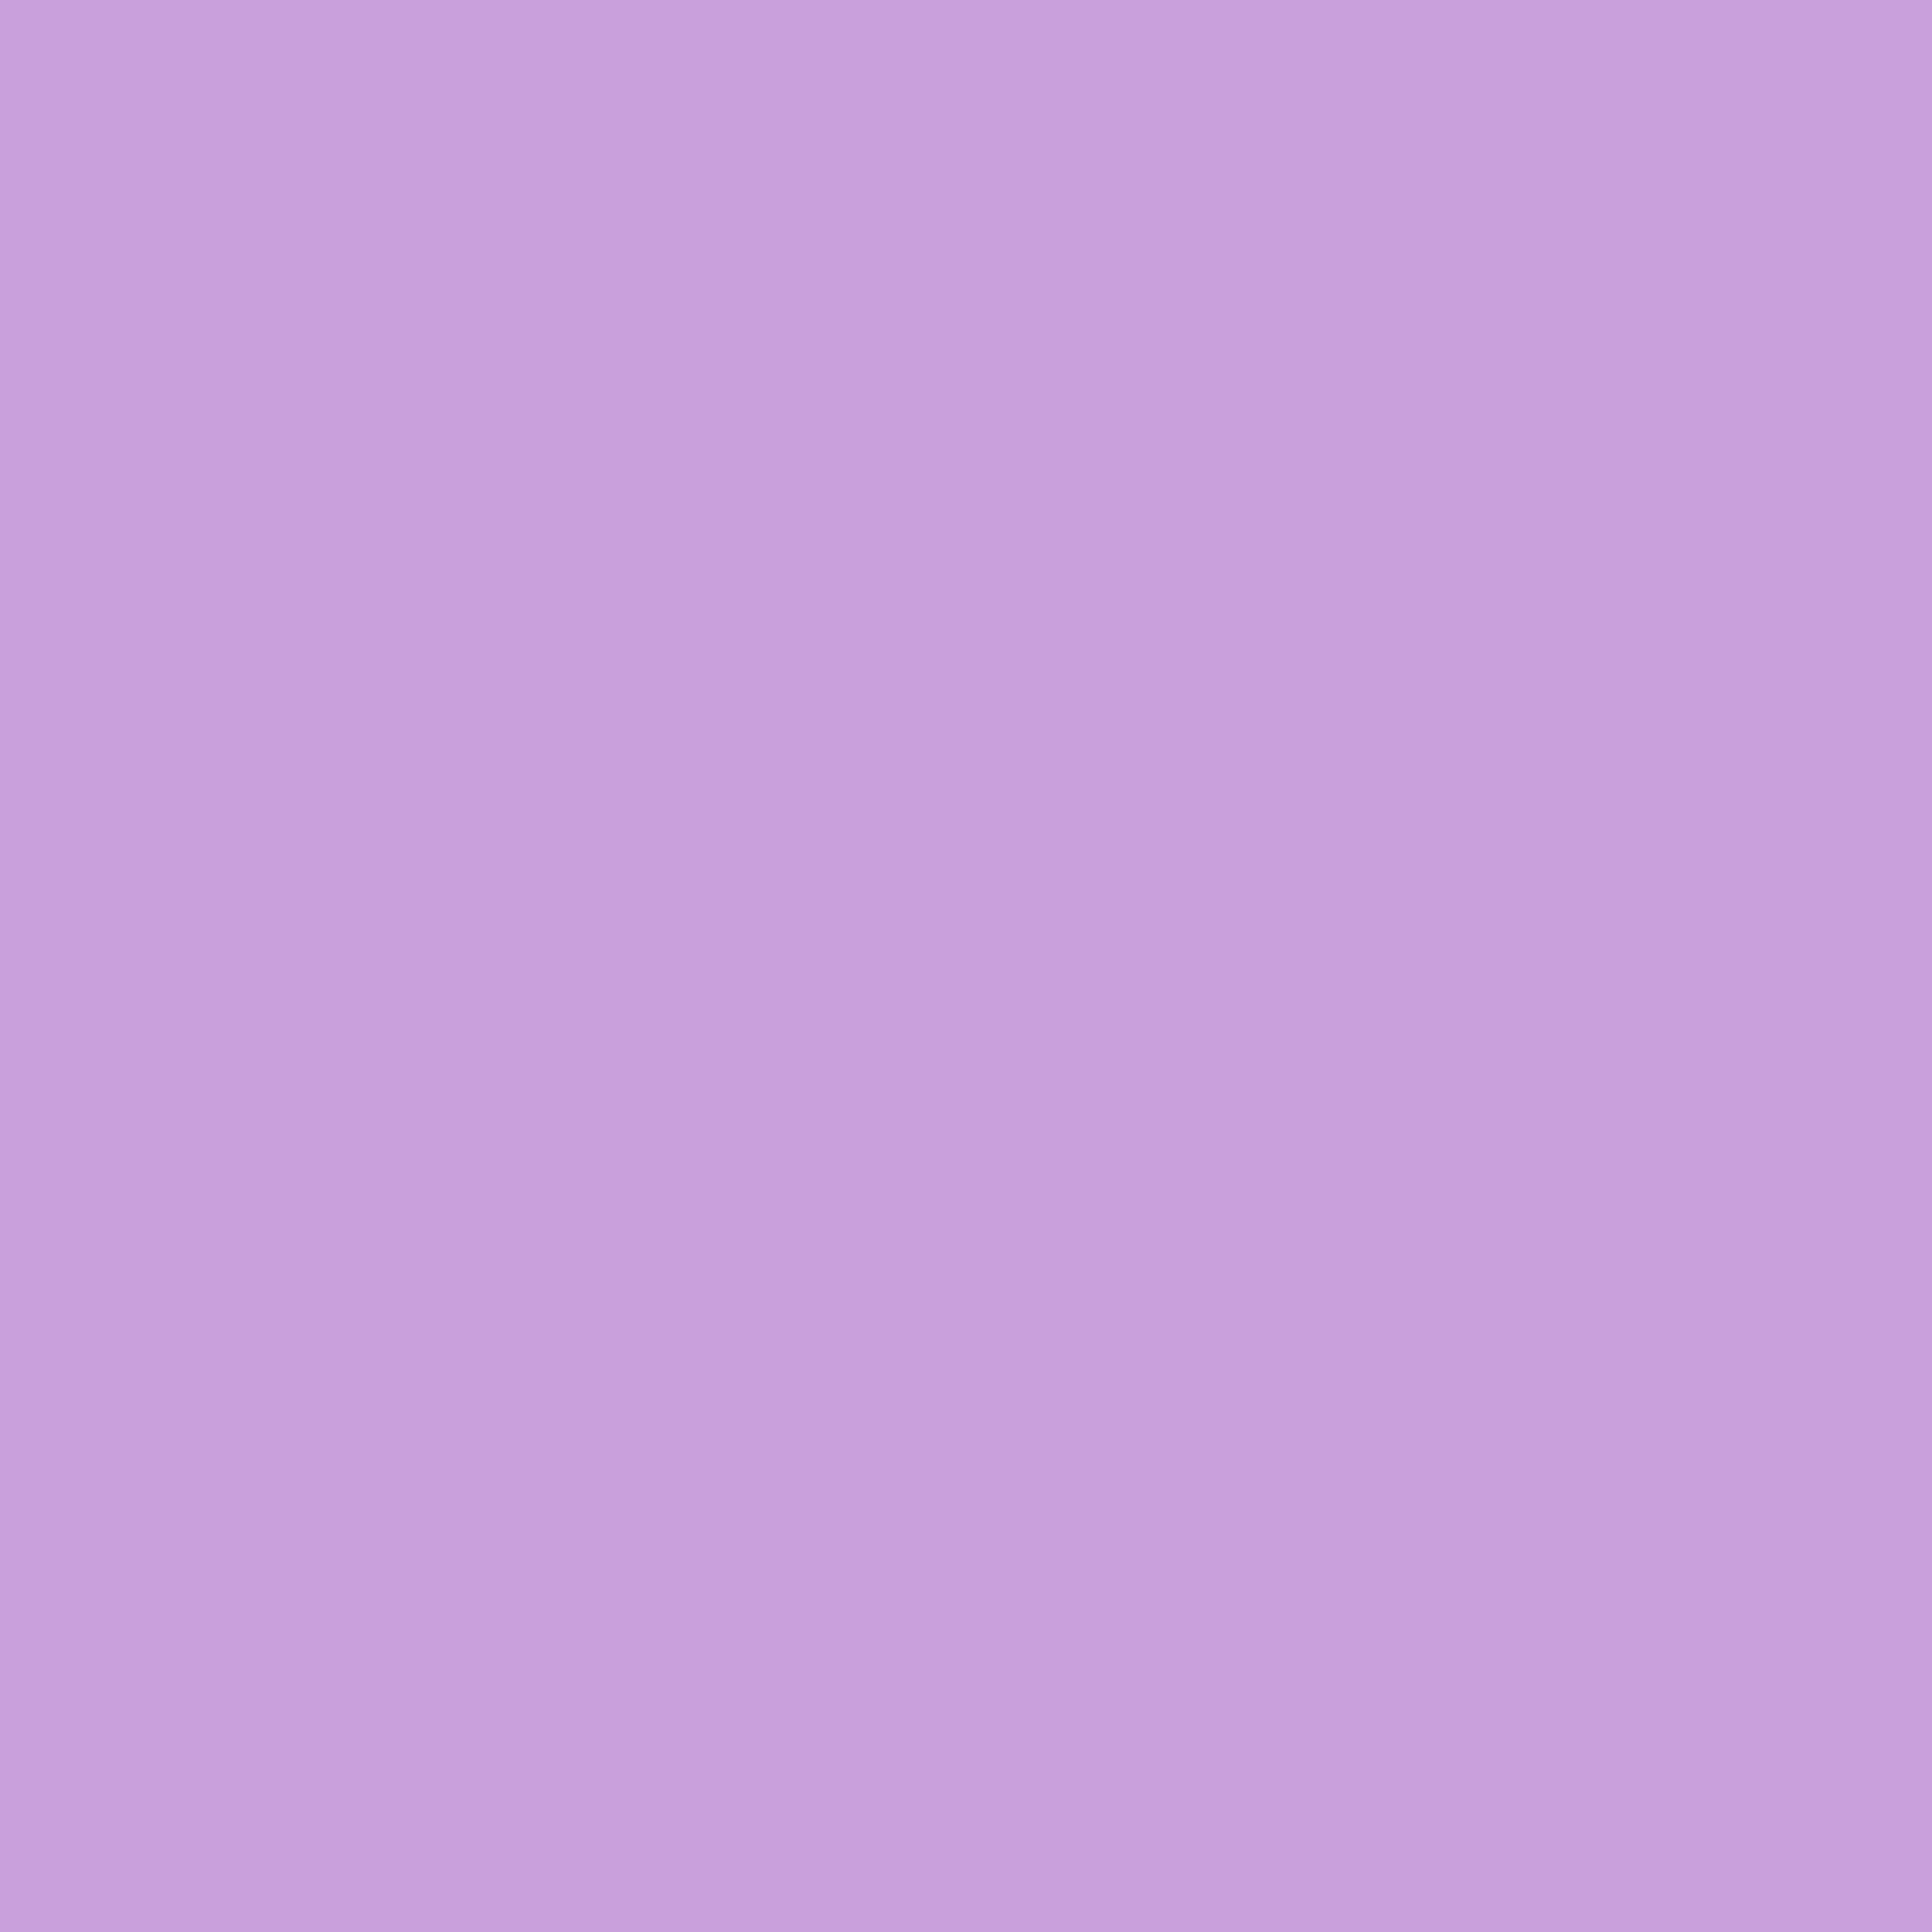 2732x2732 Wisteria Solid Color Background